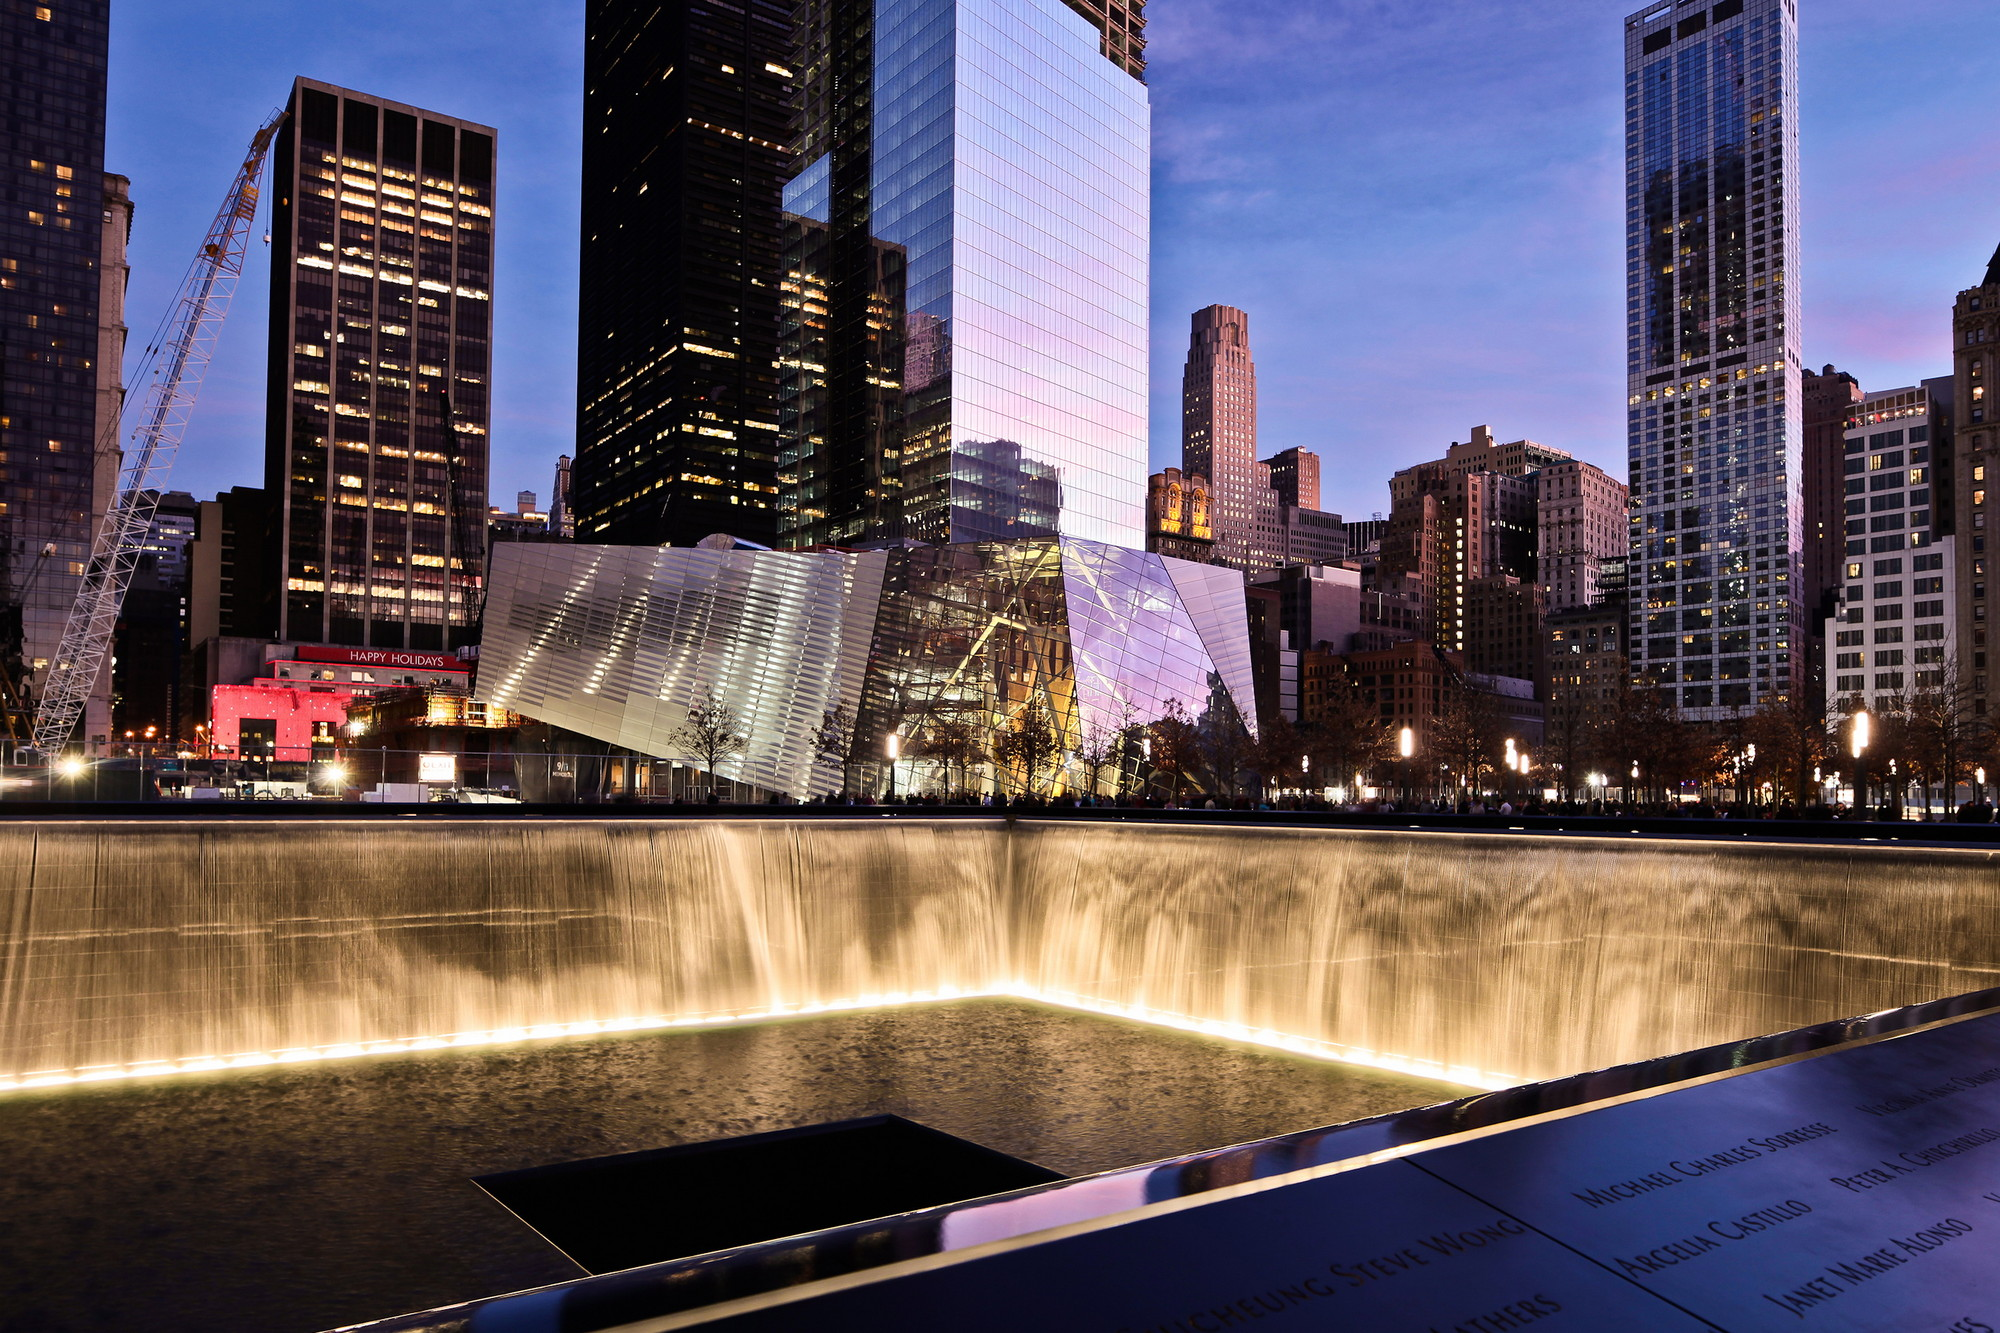 3 of The New Yorker's Best Architecture Reads, The National September 11 Memorial Museum by Snøhetta in New York. Image © Joe Woolhead